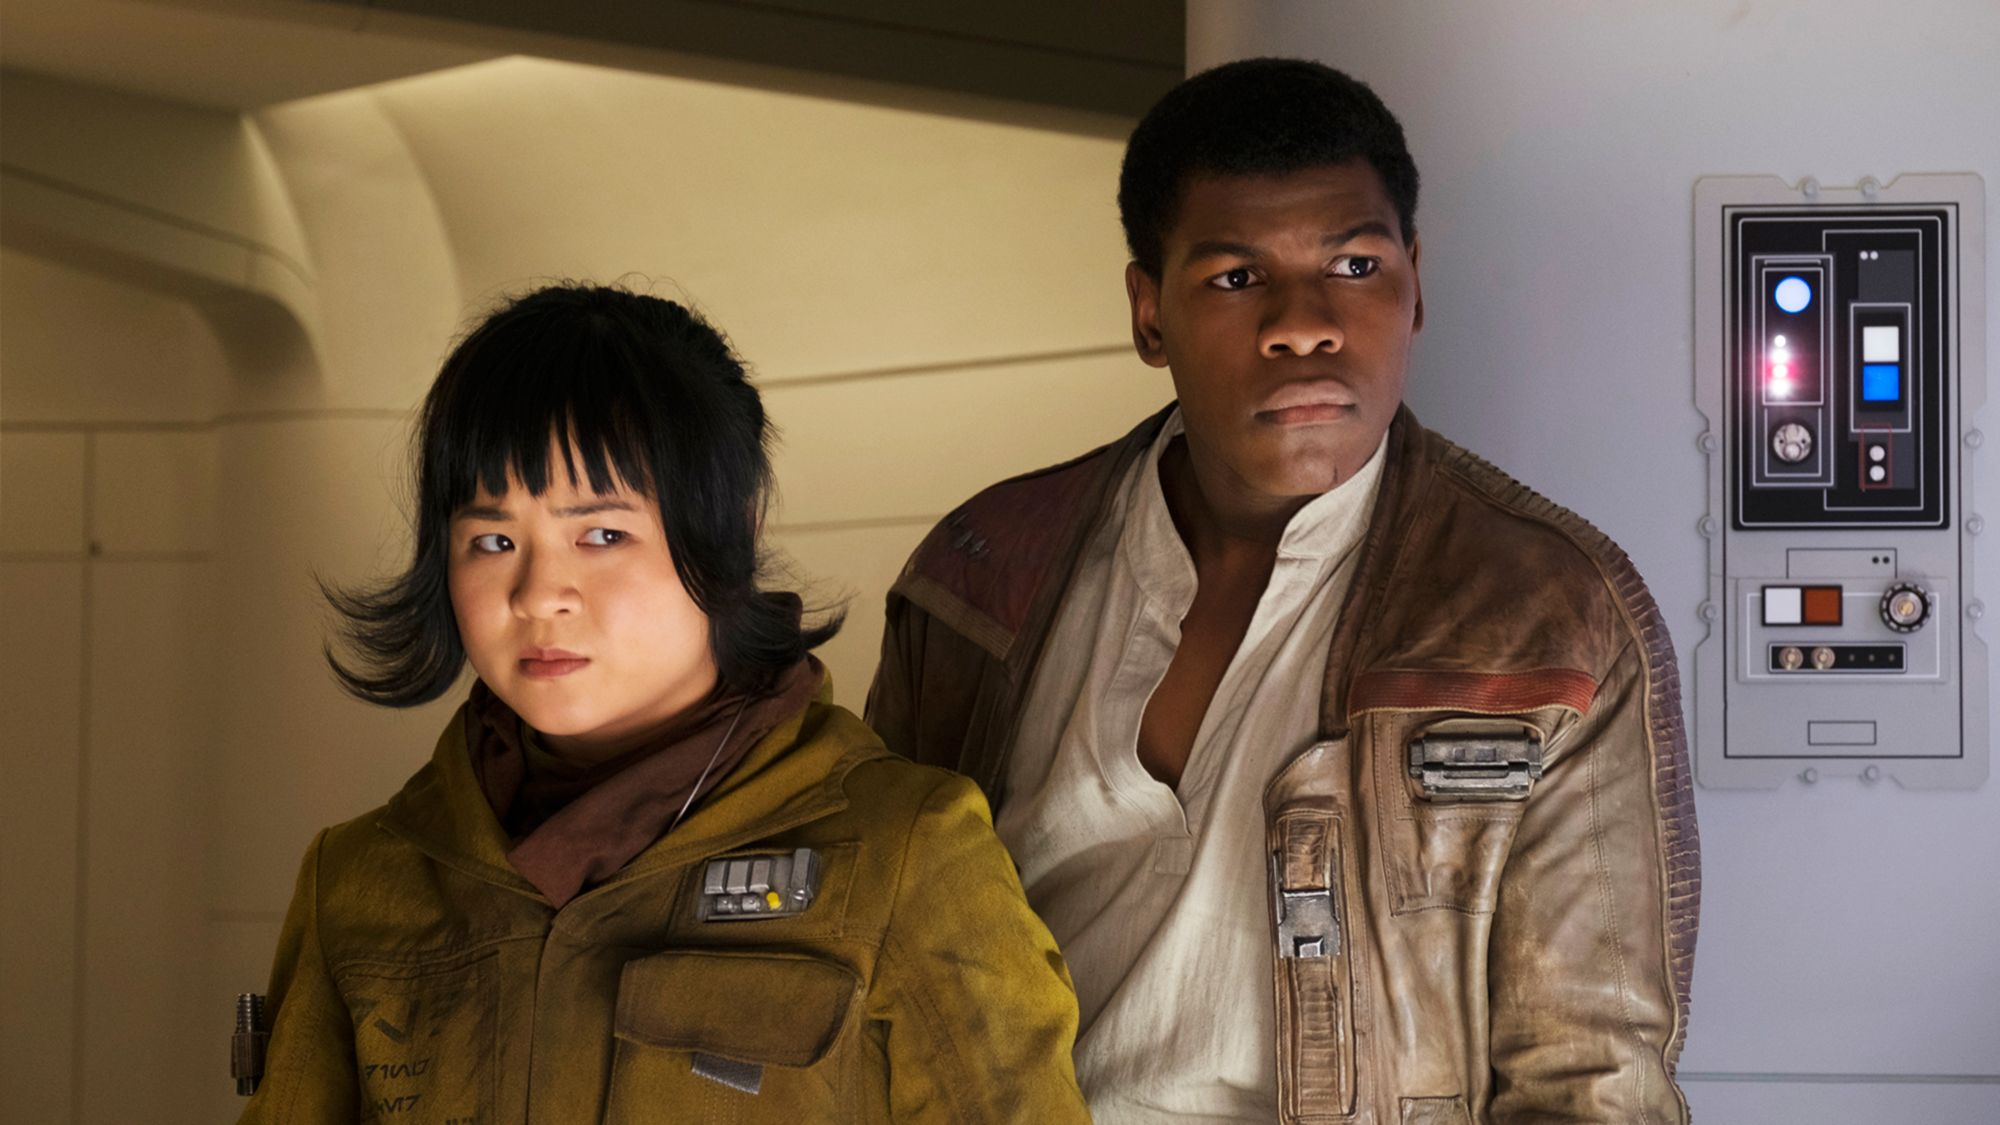 Star Wars The Last Jedi hub: Phil and  Rose